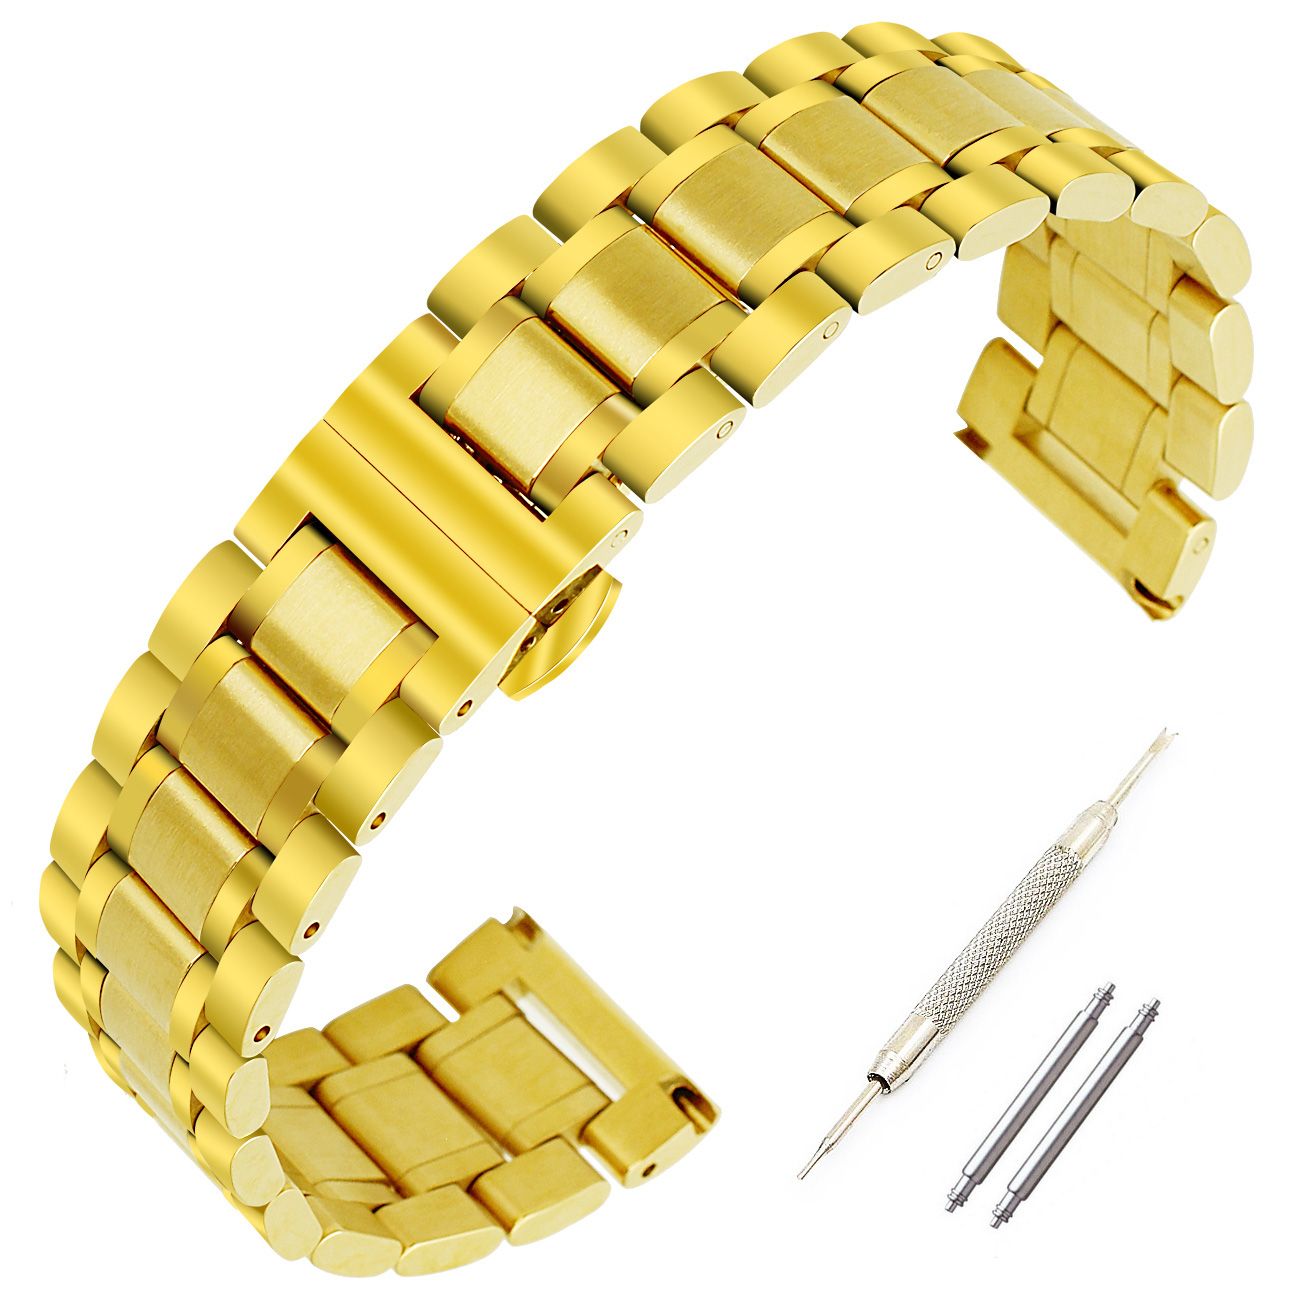 18mm 20mm 22mm 24mm Stainless Steel font b Watch b font Band for font b Casio